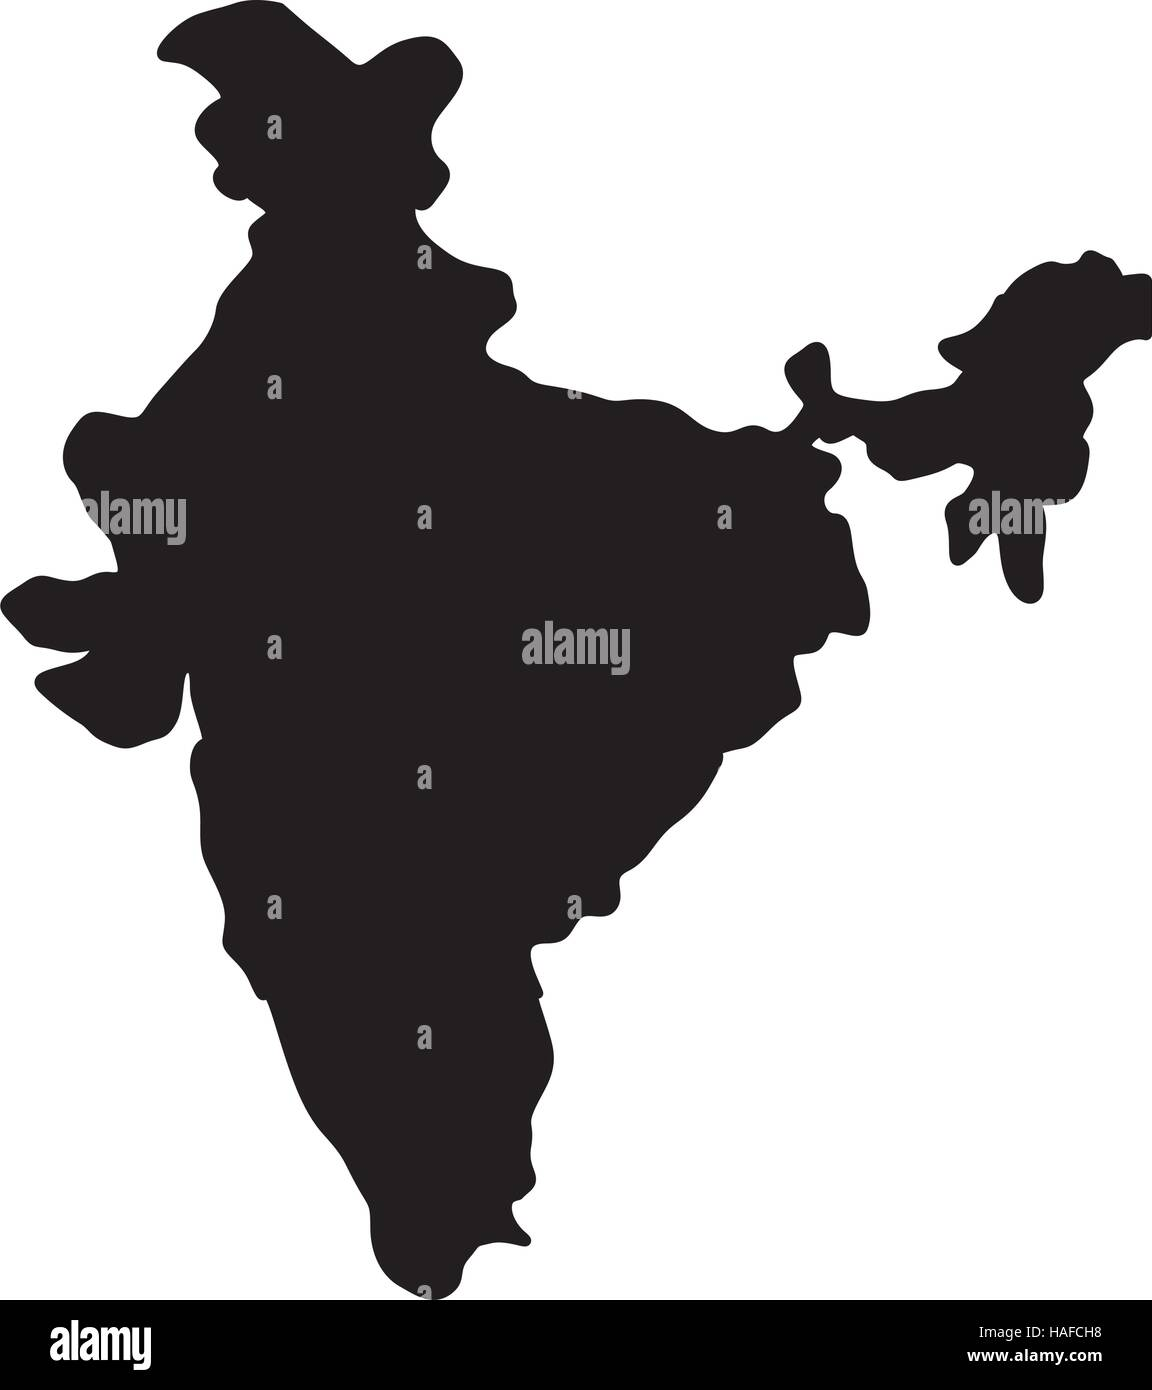 India Map Silhouette Stock Vector Art Illustration Vector Image - India map vector